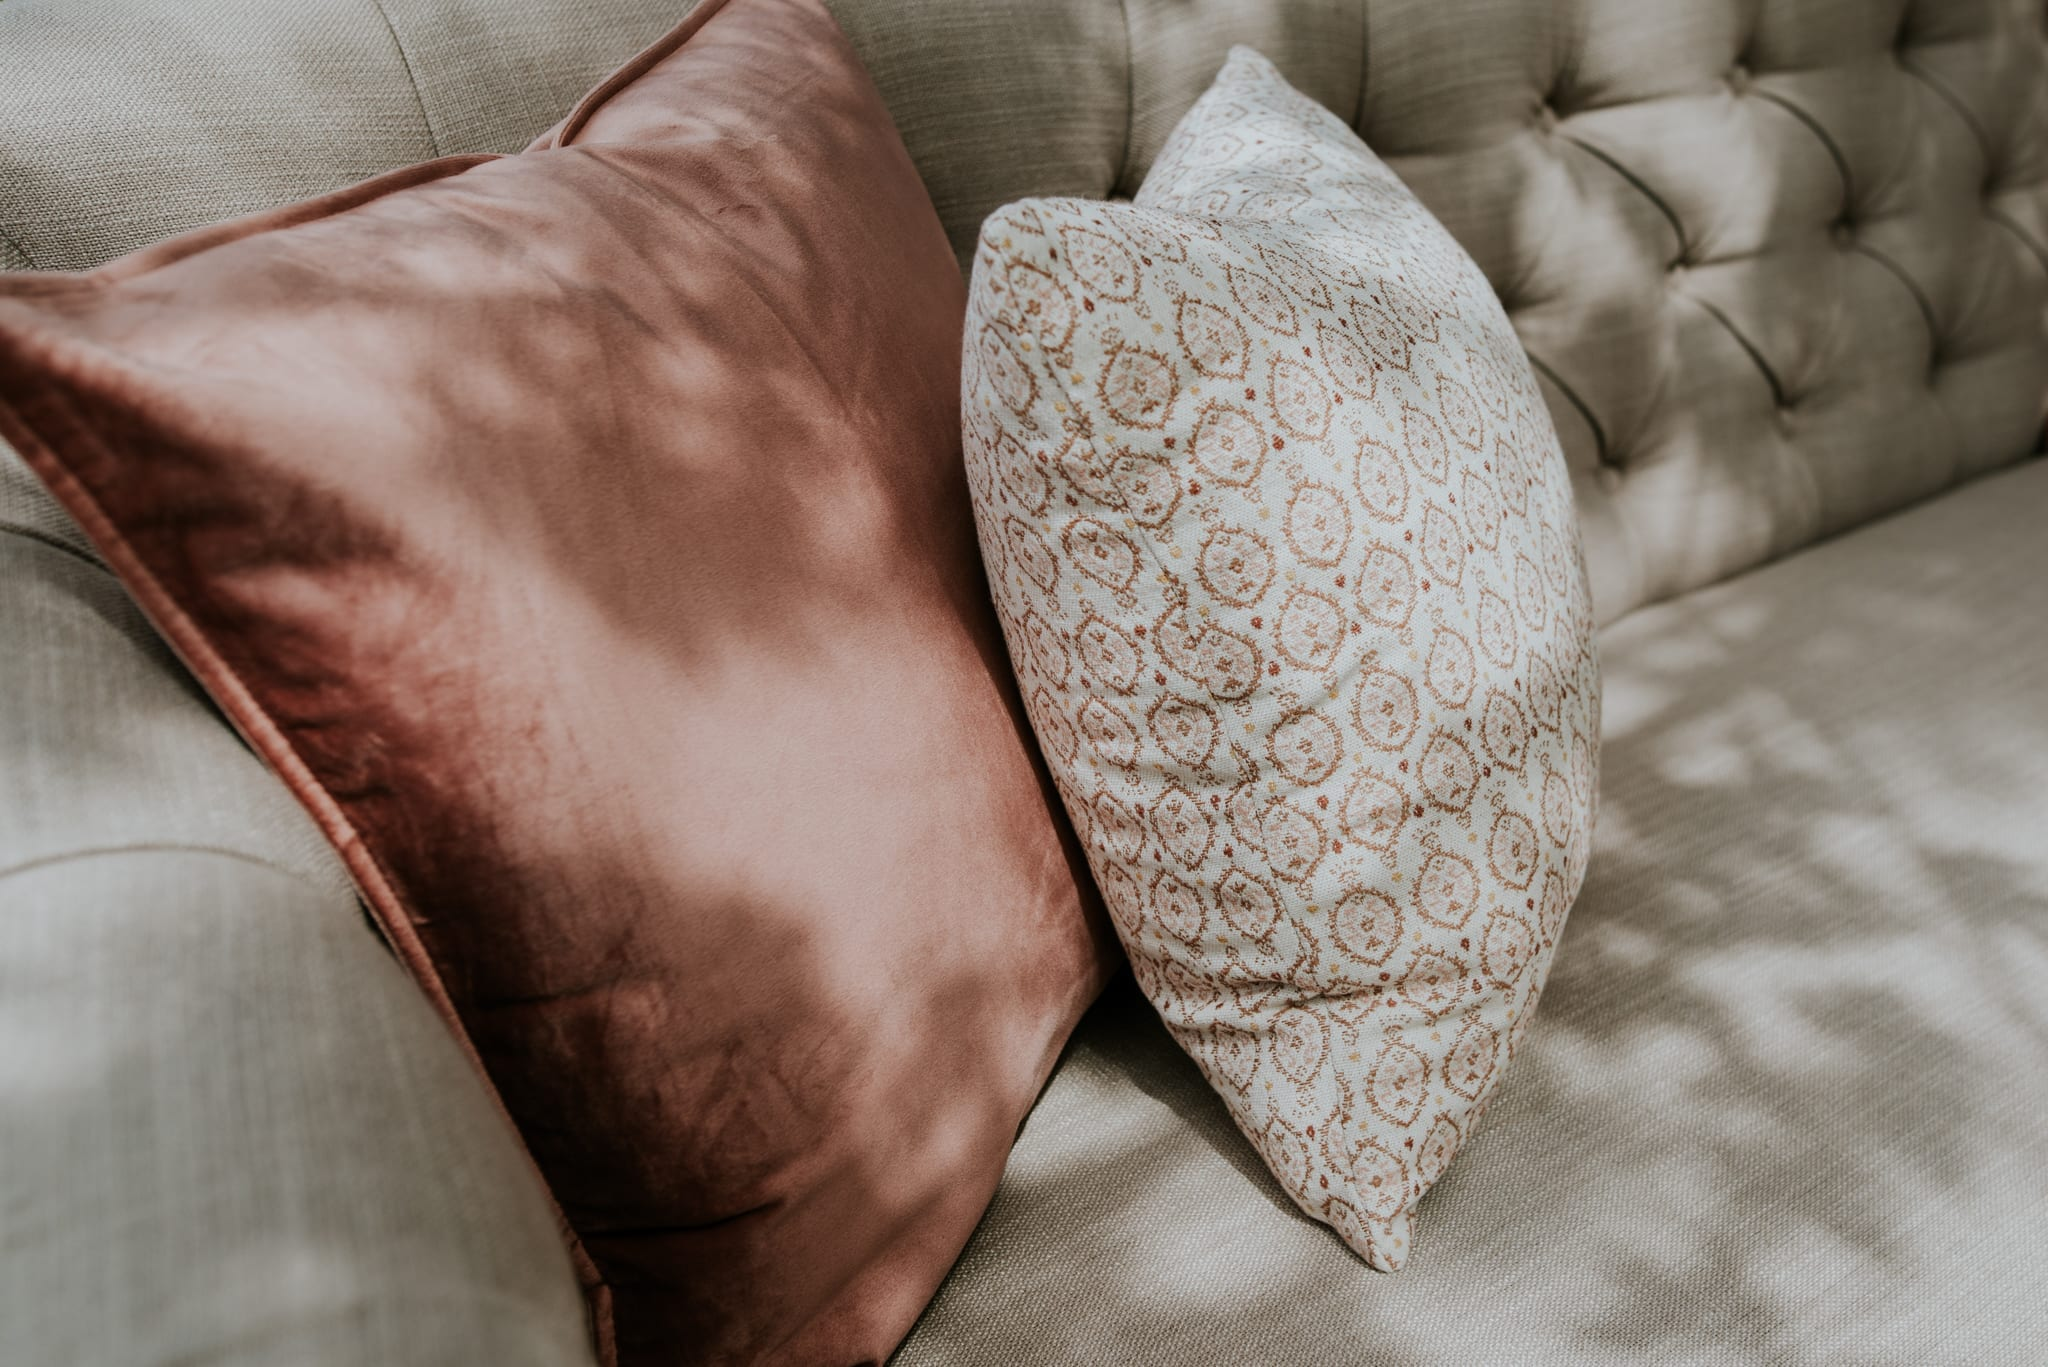 Selection of pink cushions for wedding lounge area